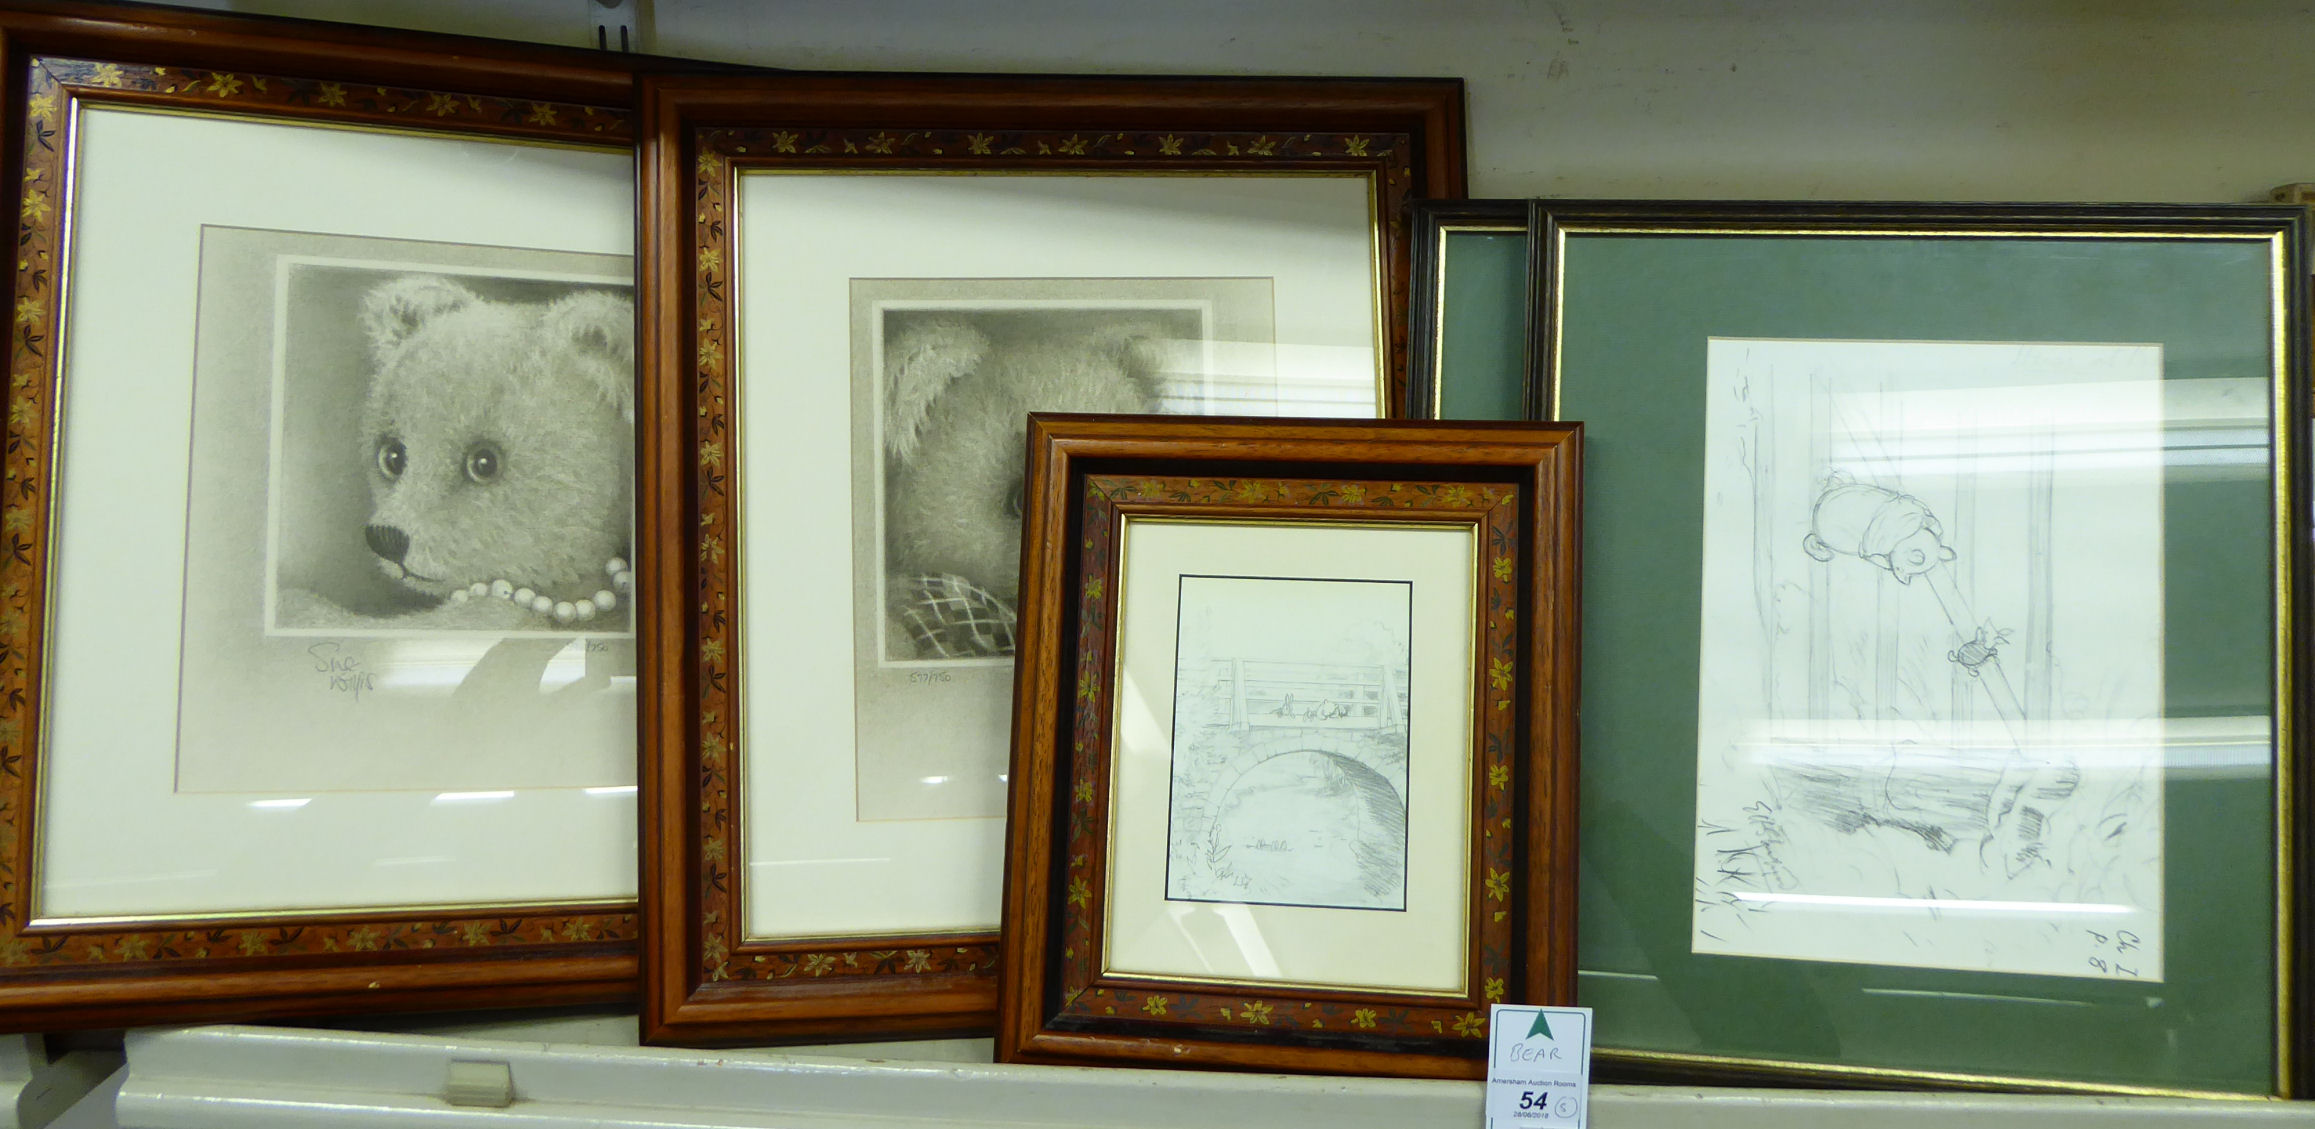 Lot 54 - Framed pictures: to include Sue Willis - a study of a bear Limited Edition monochrome print